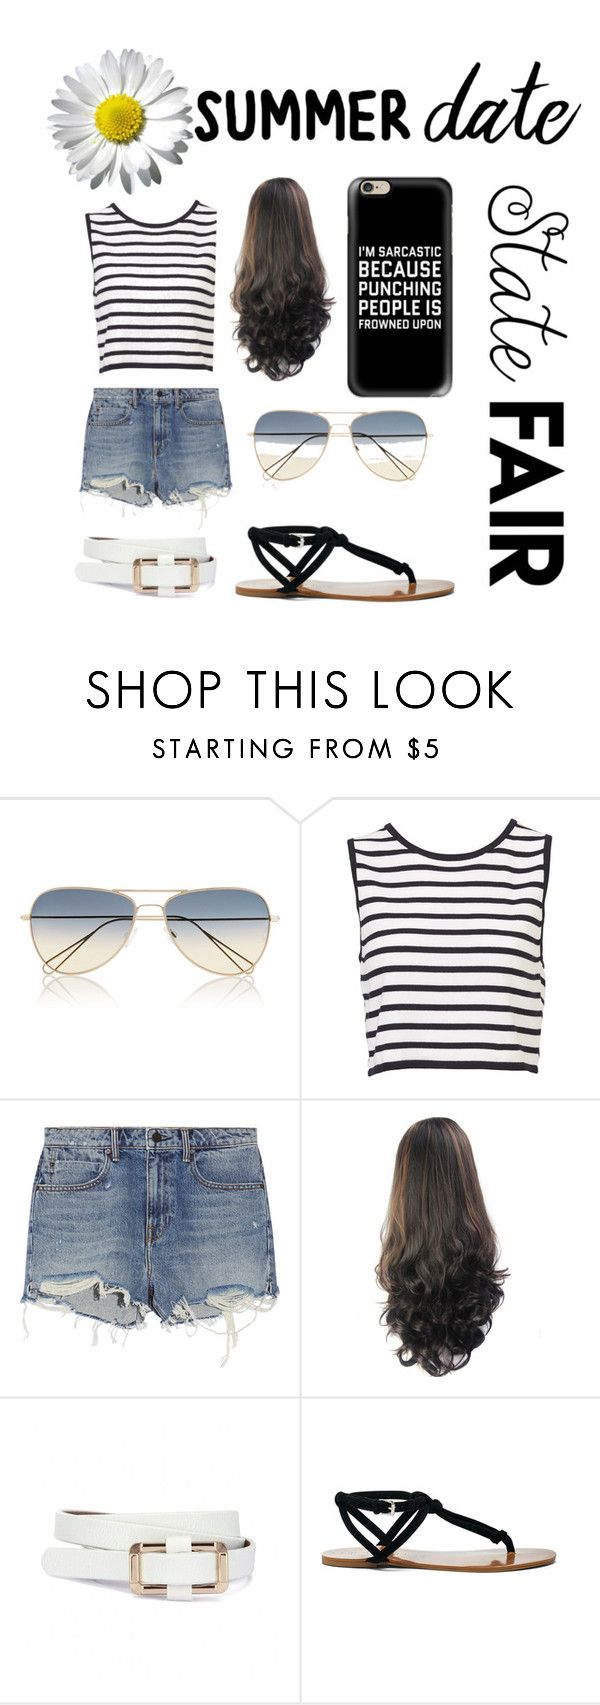 """summer date @ the state fair☀️"" by danirayeee ❤ liked on Polyvore featuring Isabel Marant, Alexander Wang, Sole Society, Casetify, statefair and summerdate"